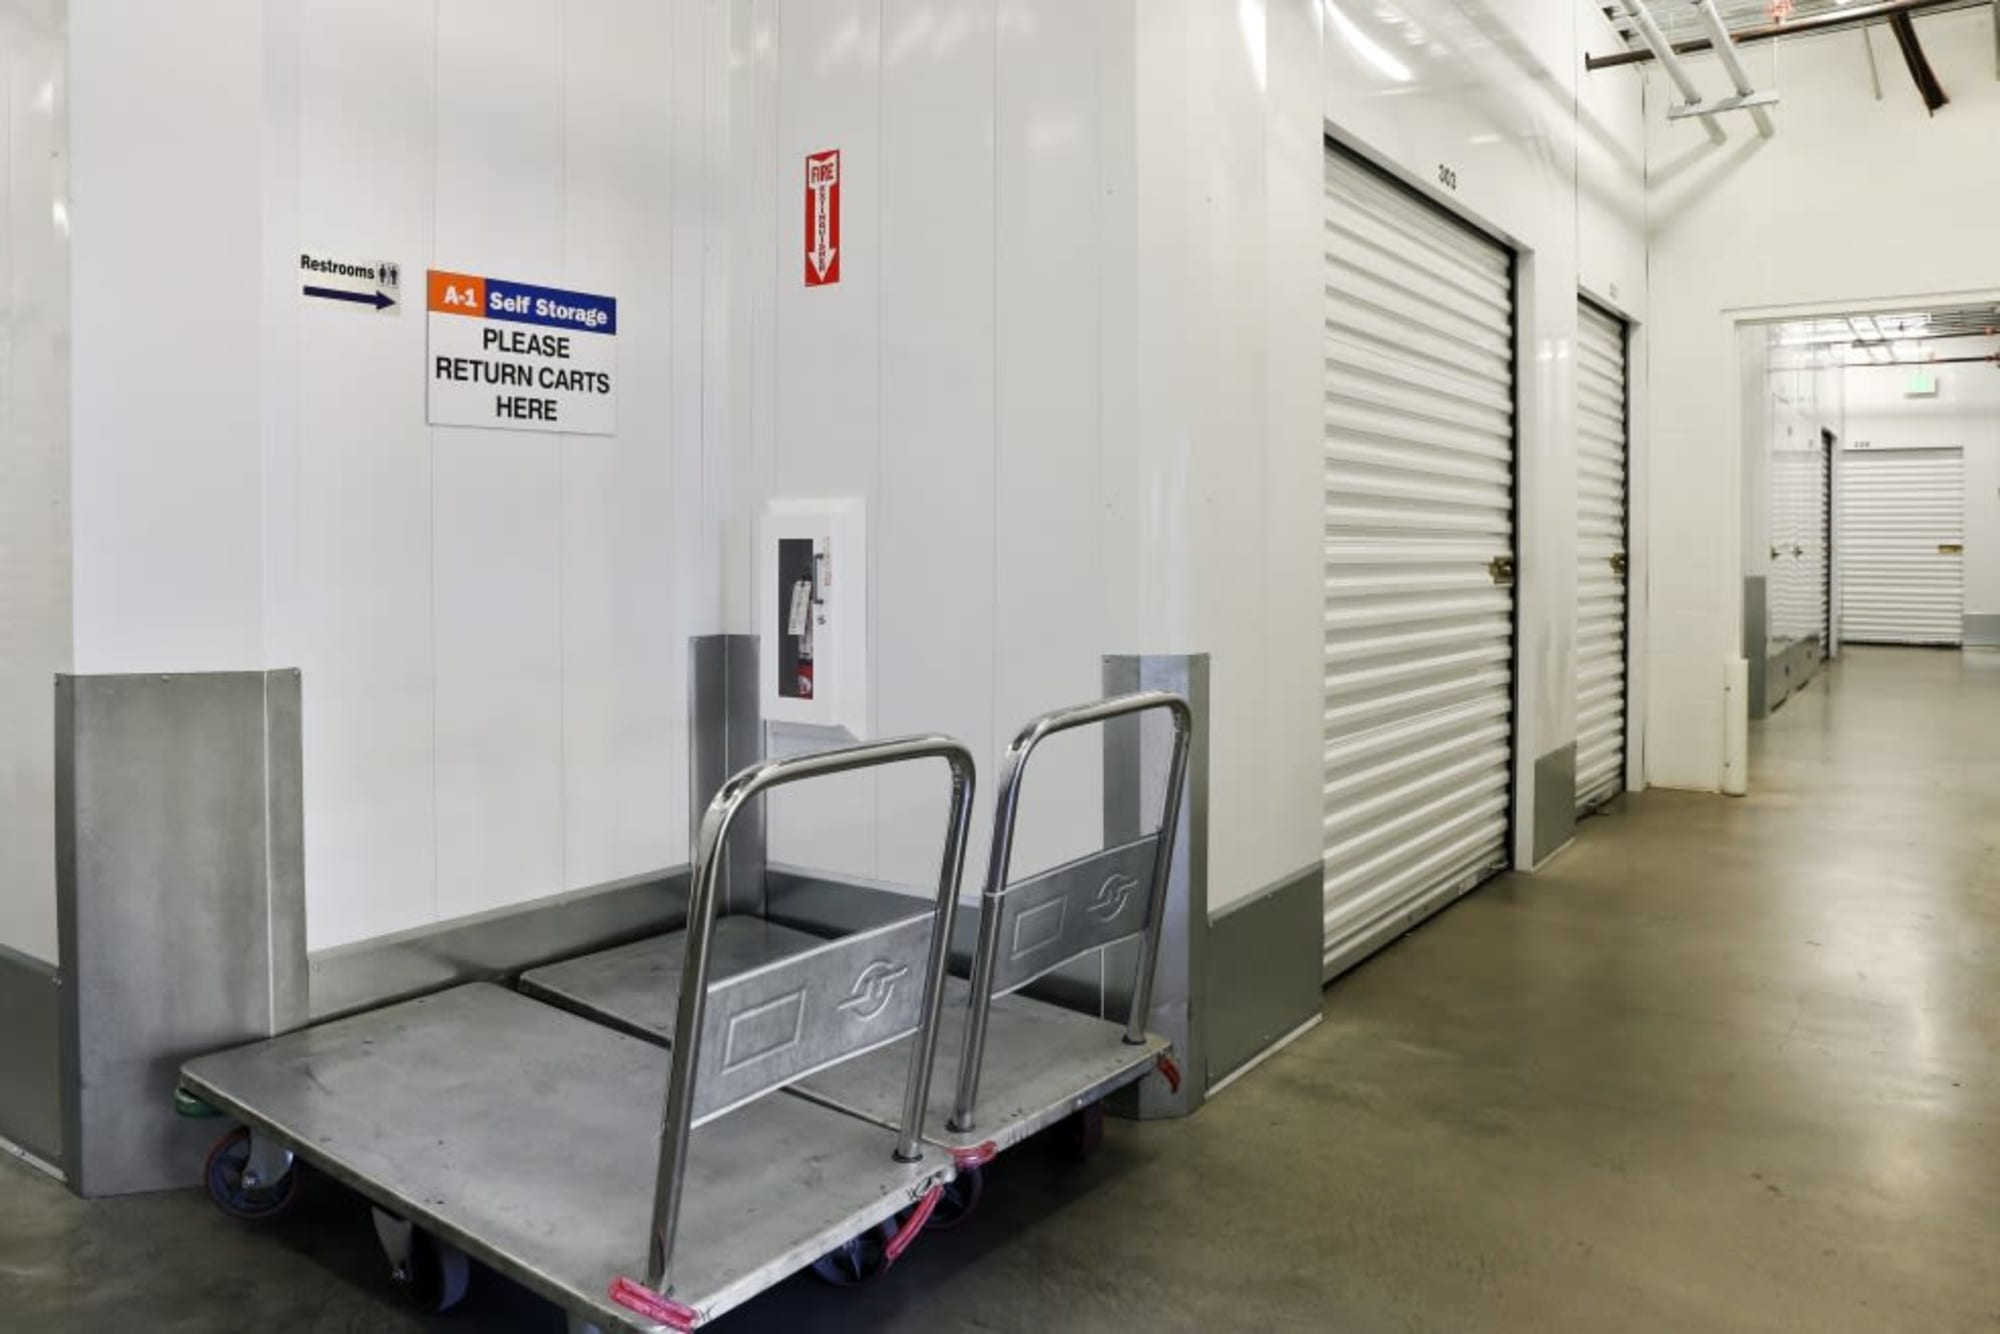 Carts make loading easy at A-1 Self Storage in Alhambra, California